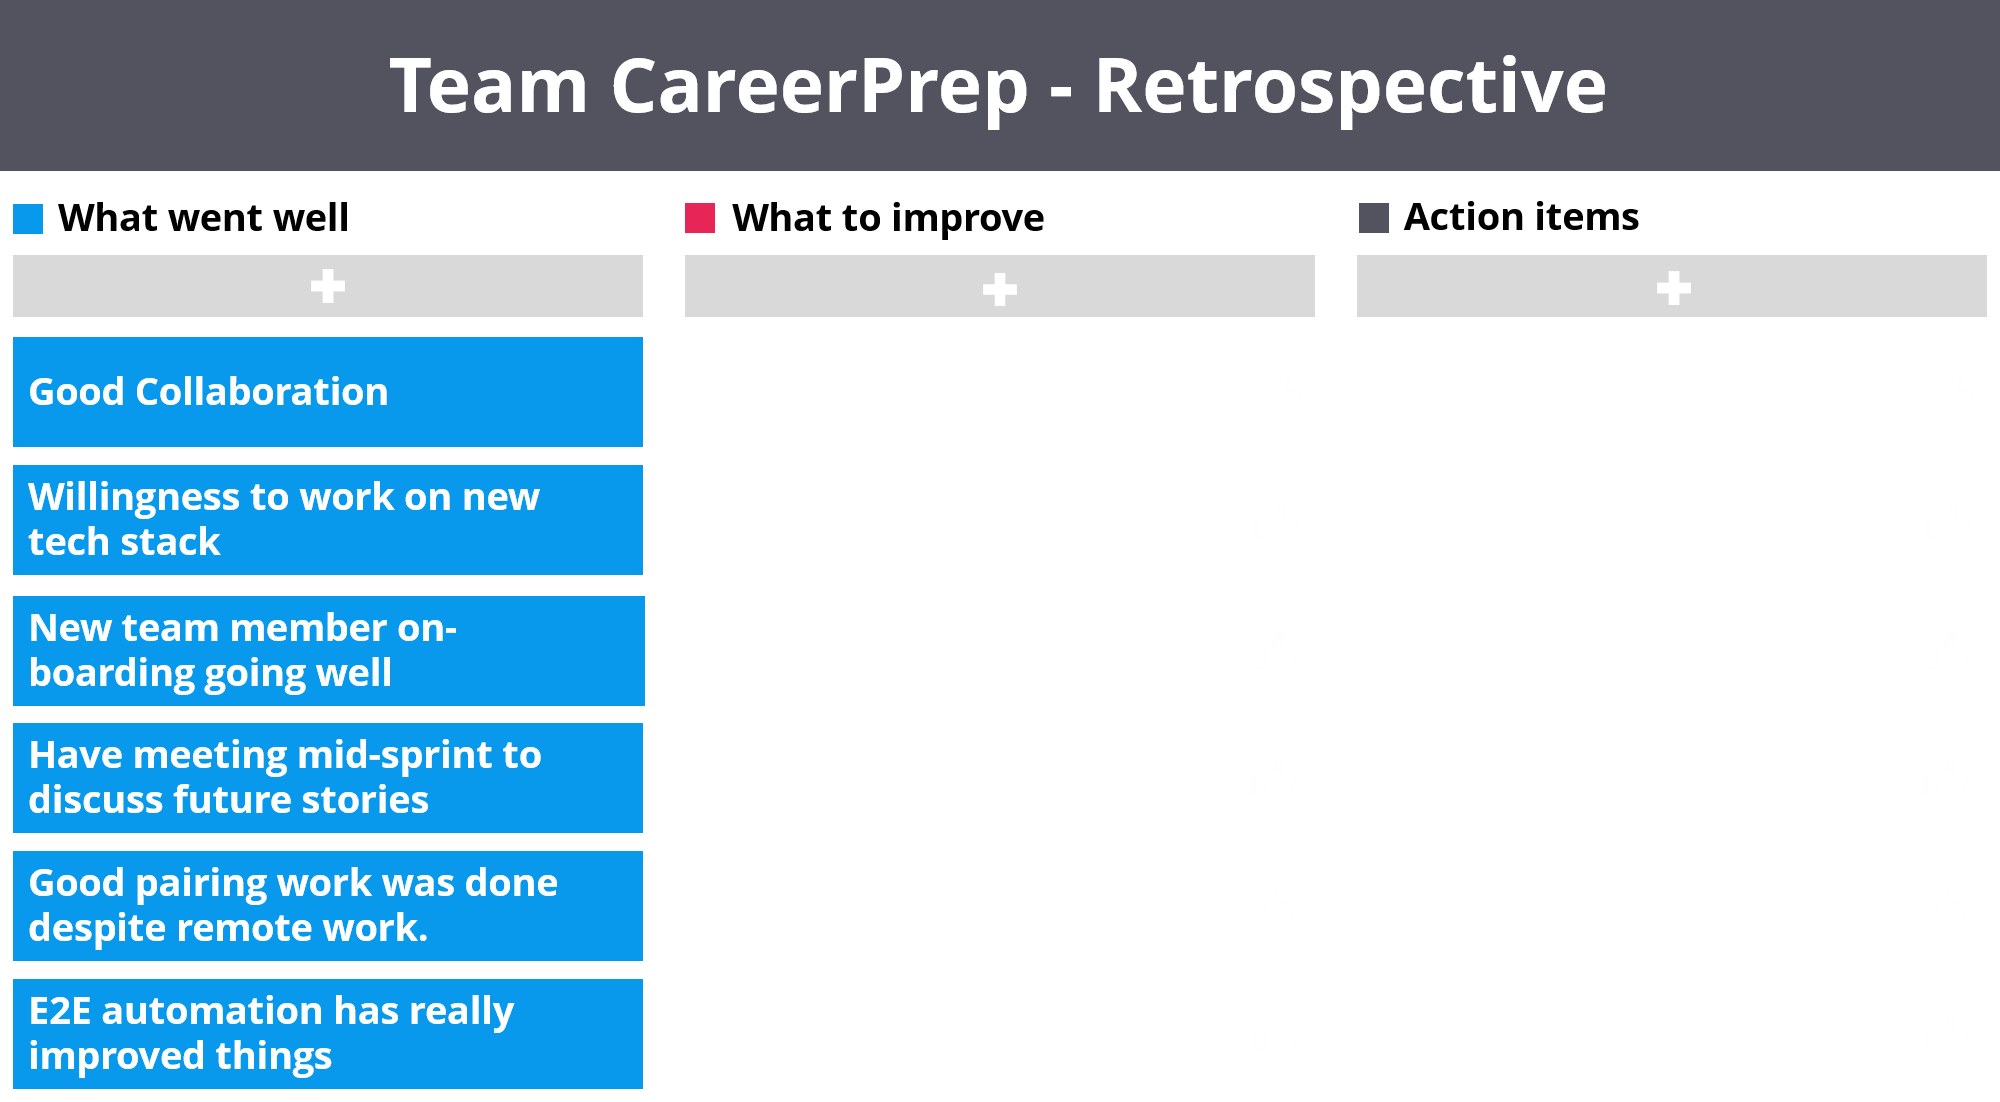 How To Do A Retrospective - what went well